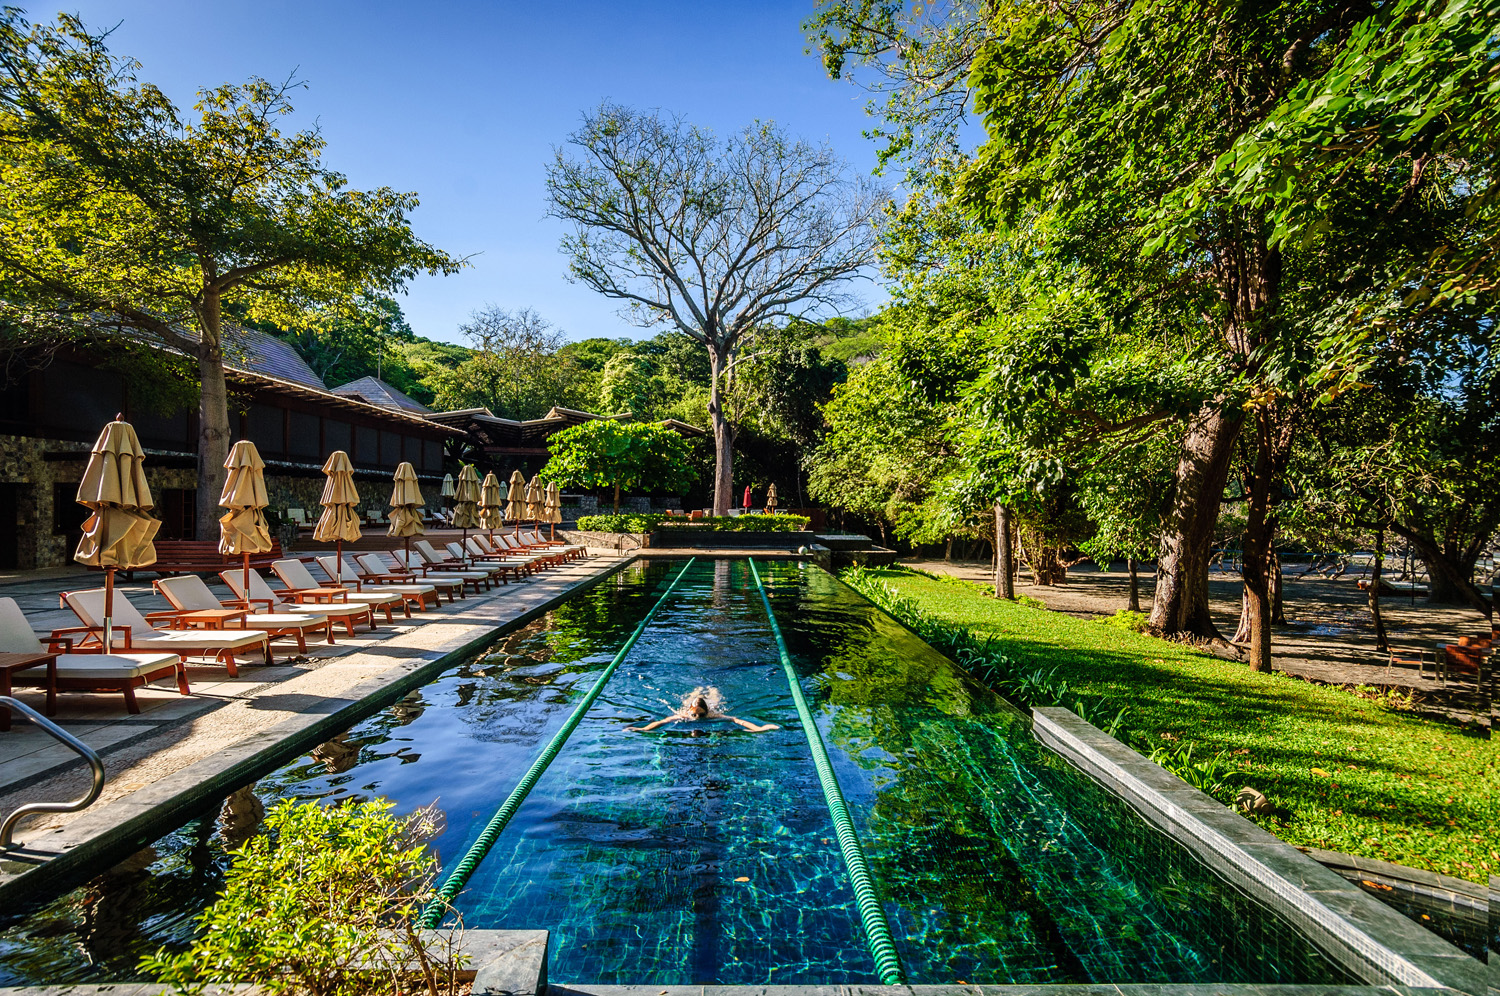 El Alma Soul Retreat in Costa Rica exemplifies hotels' trend of going natural with their design.